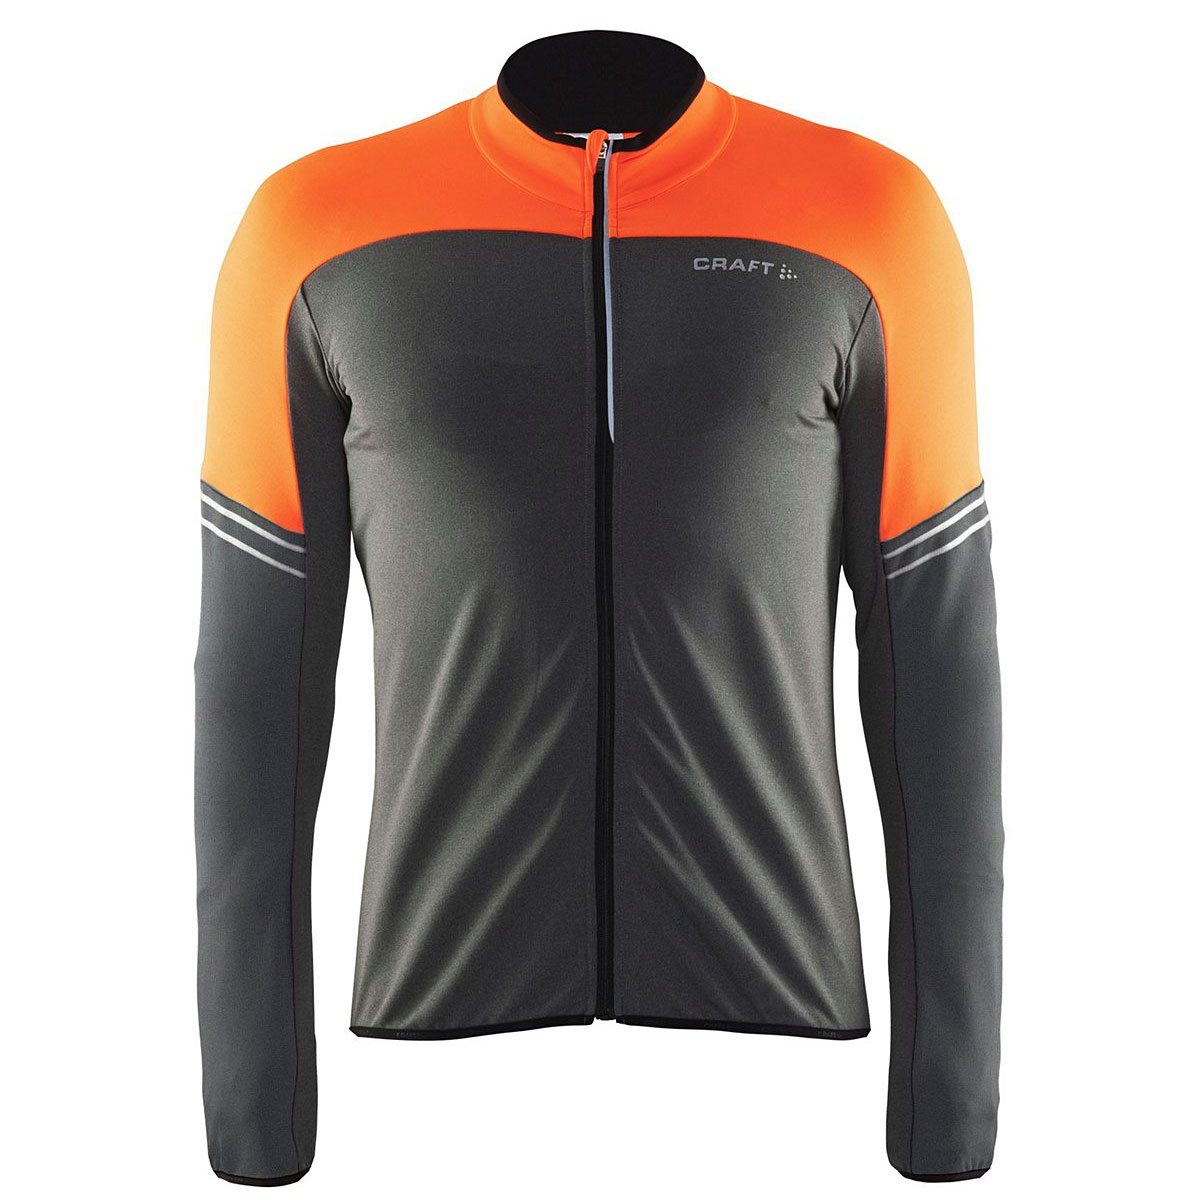 Craft Velo lang arm trikot - Grau